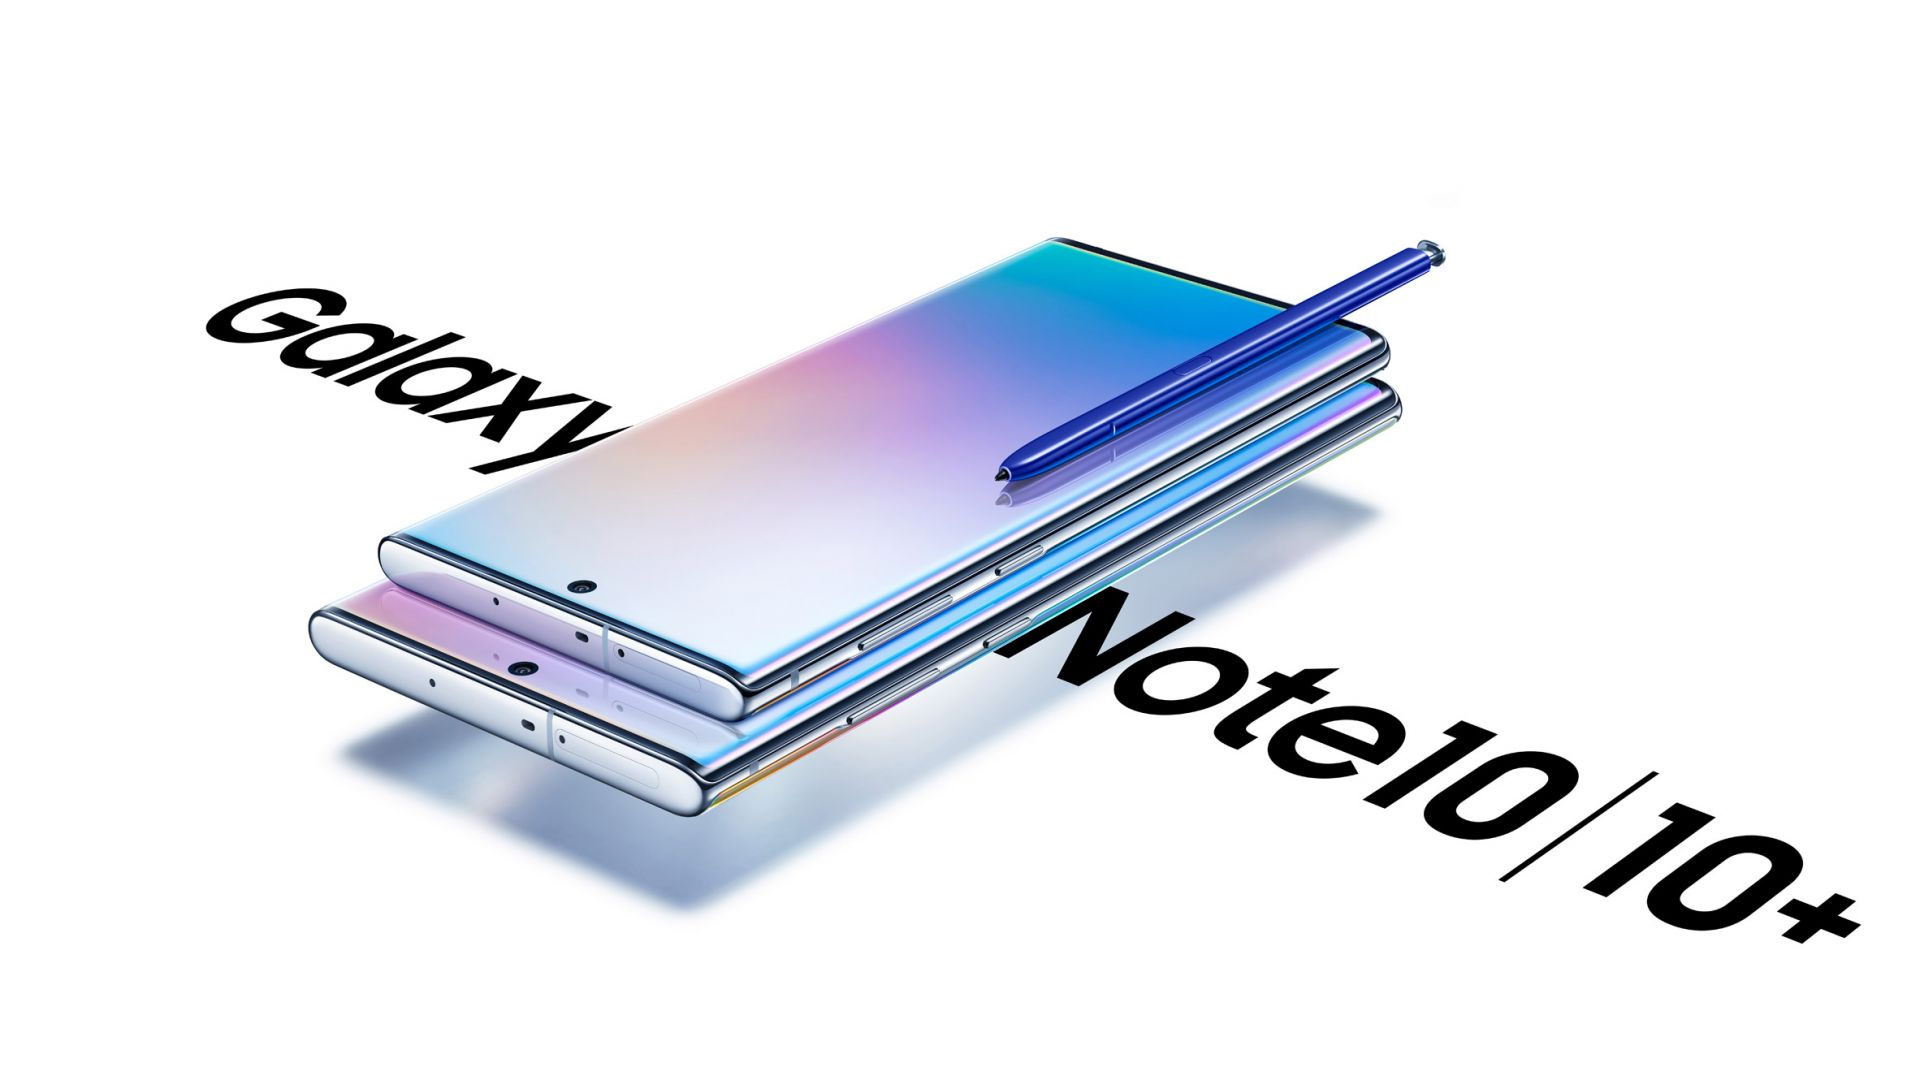 Samsung Galaxy Note 10, Samsung Galaxy Note 10 (horizontal)